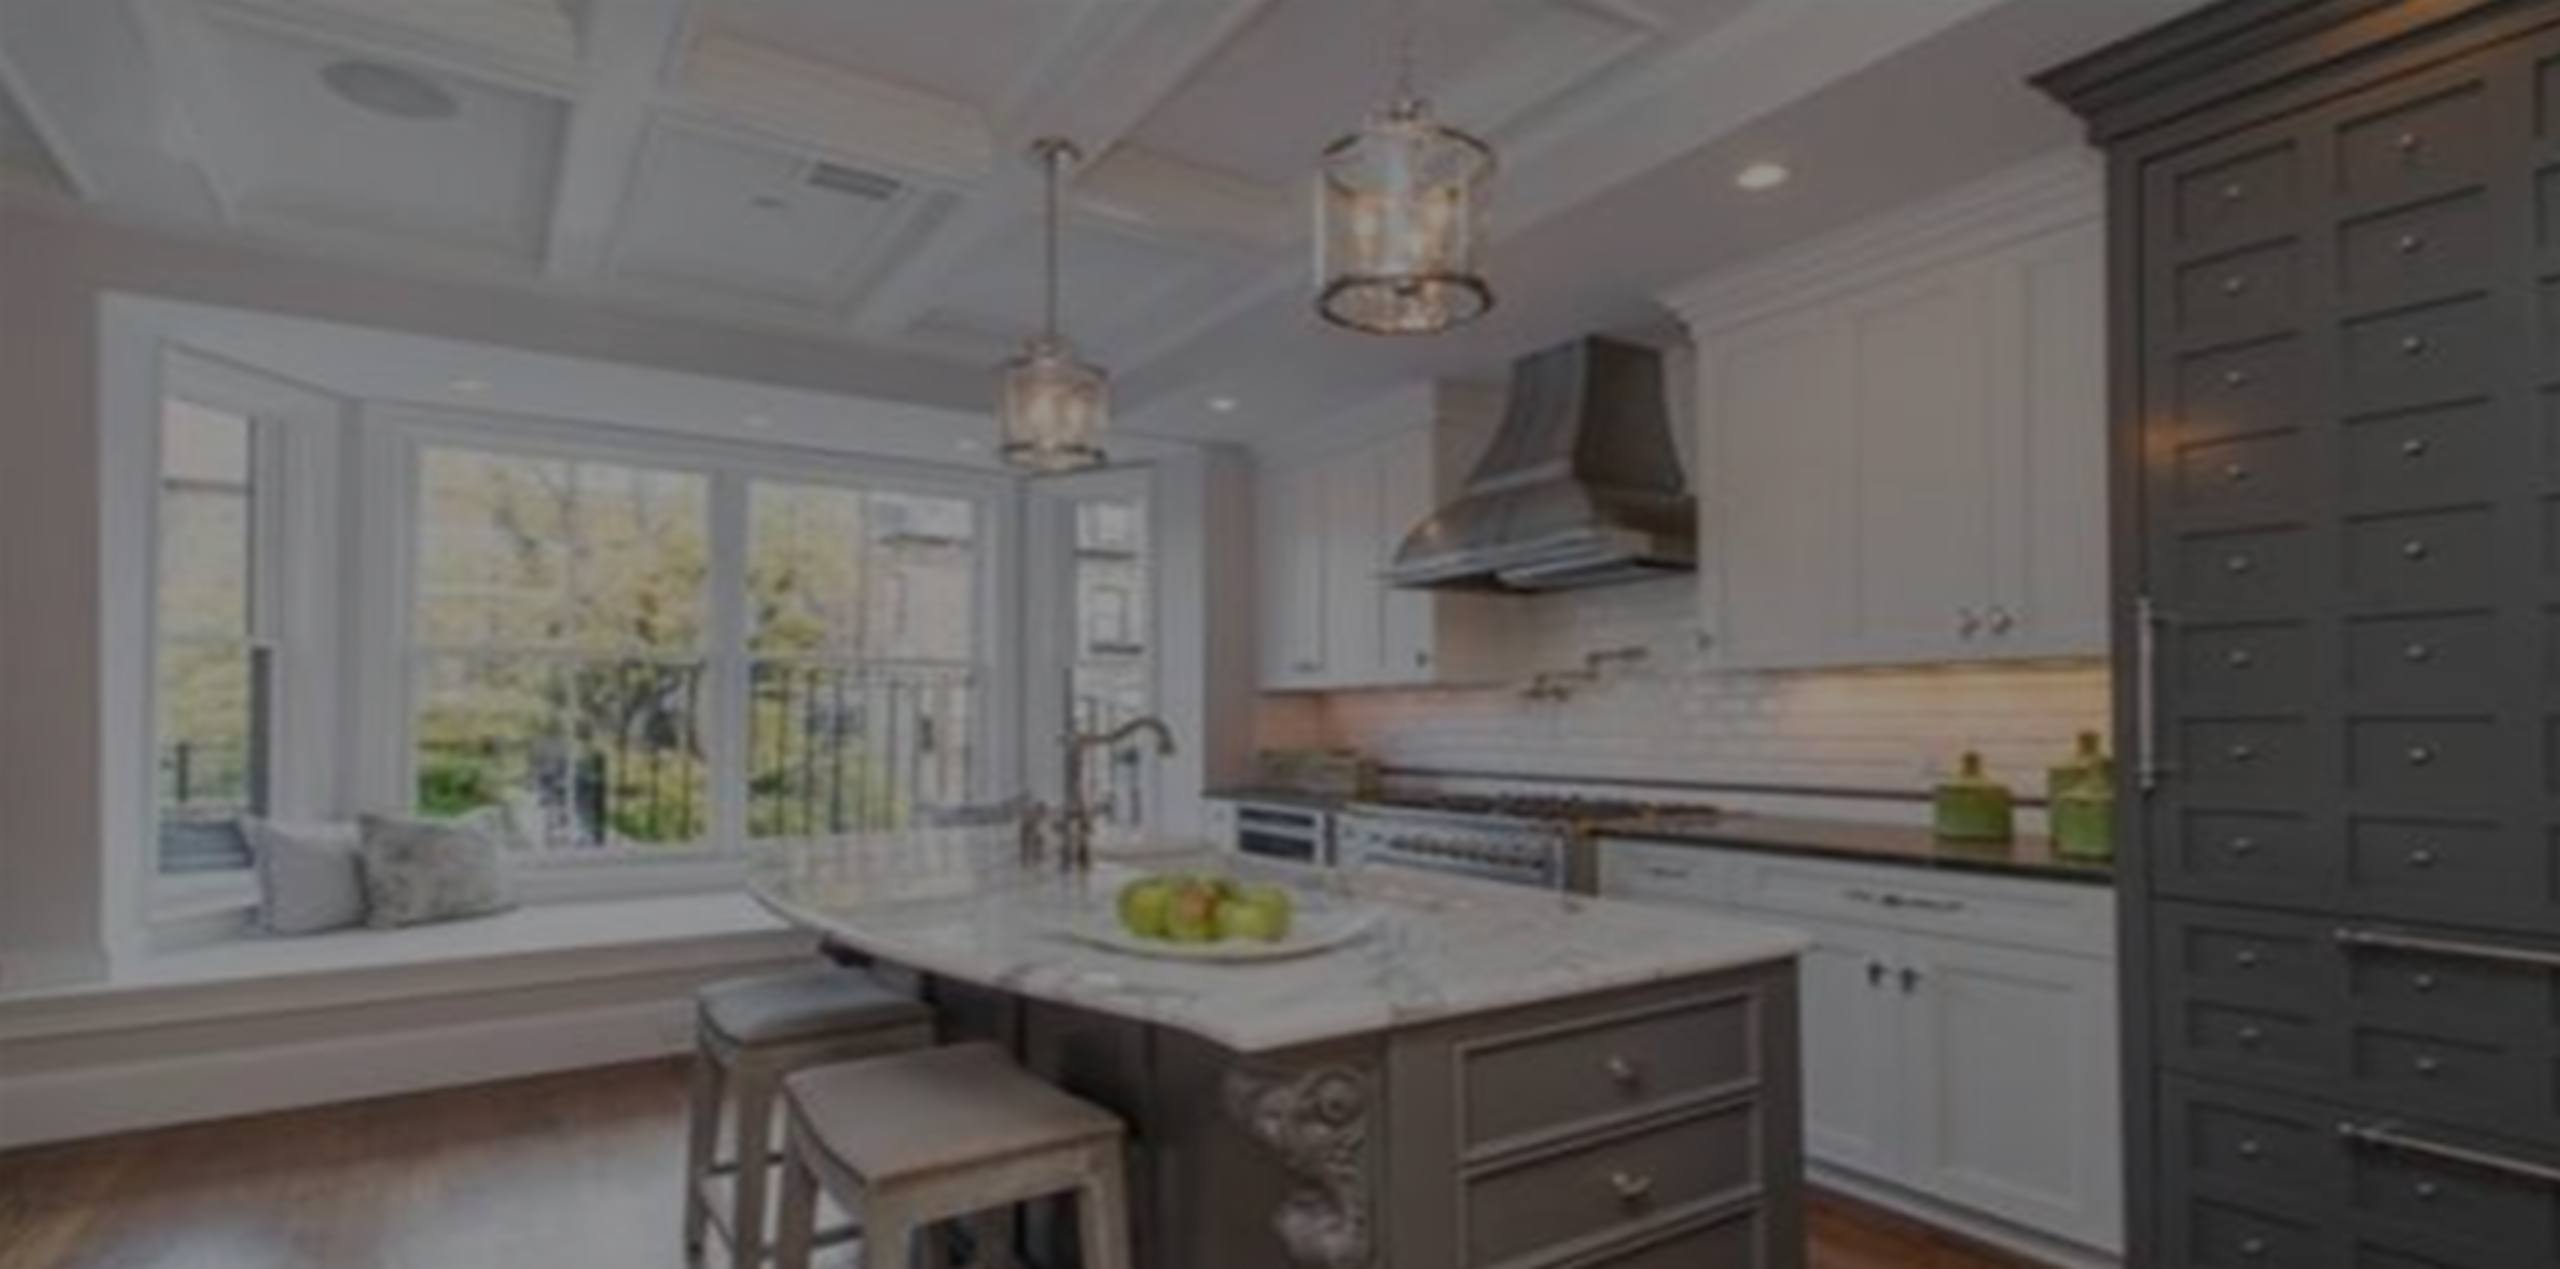 9 Fixture and Upgrade Tips for New Construction Homes